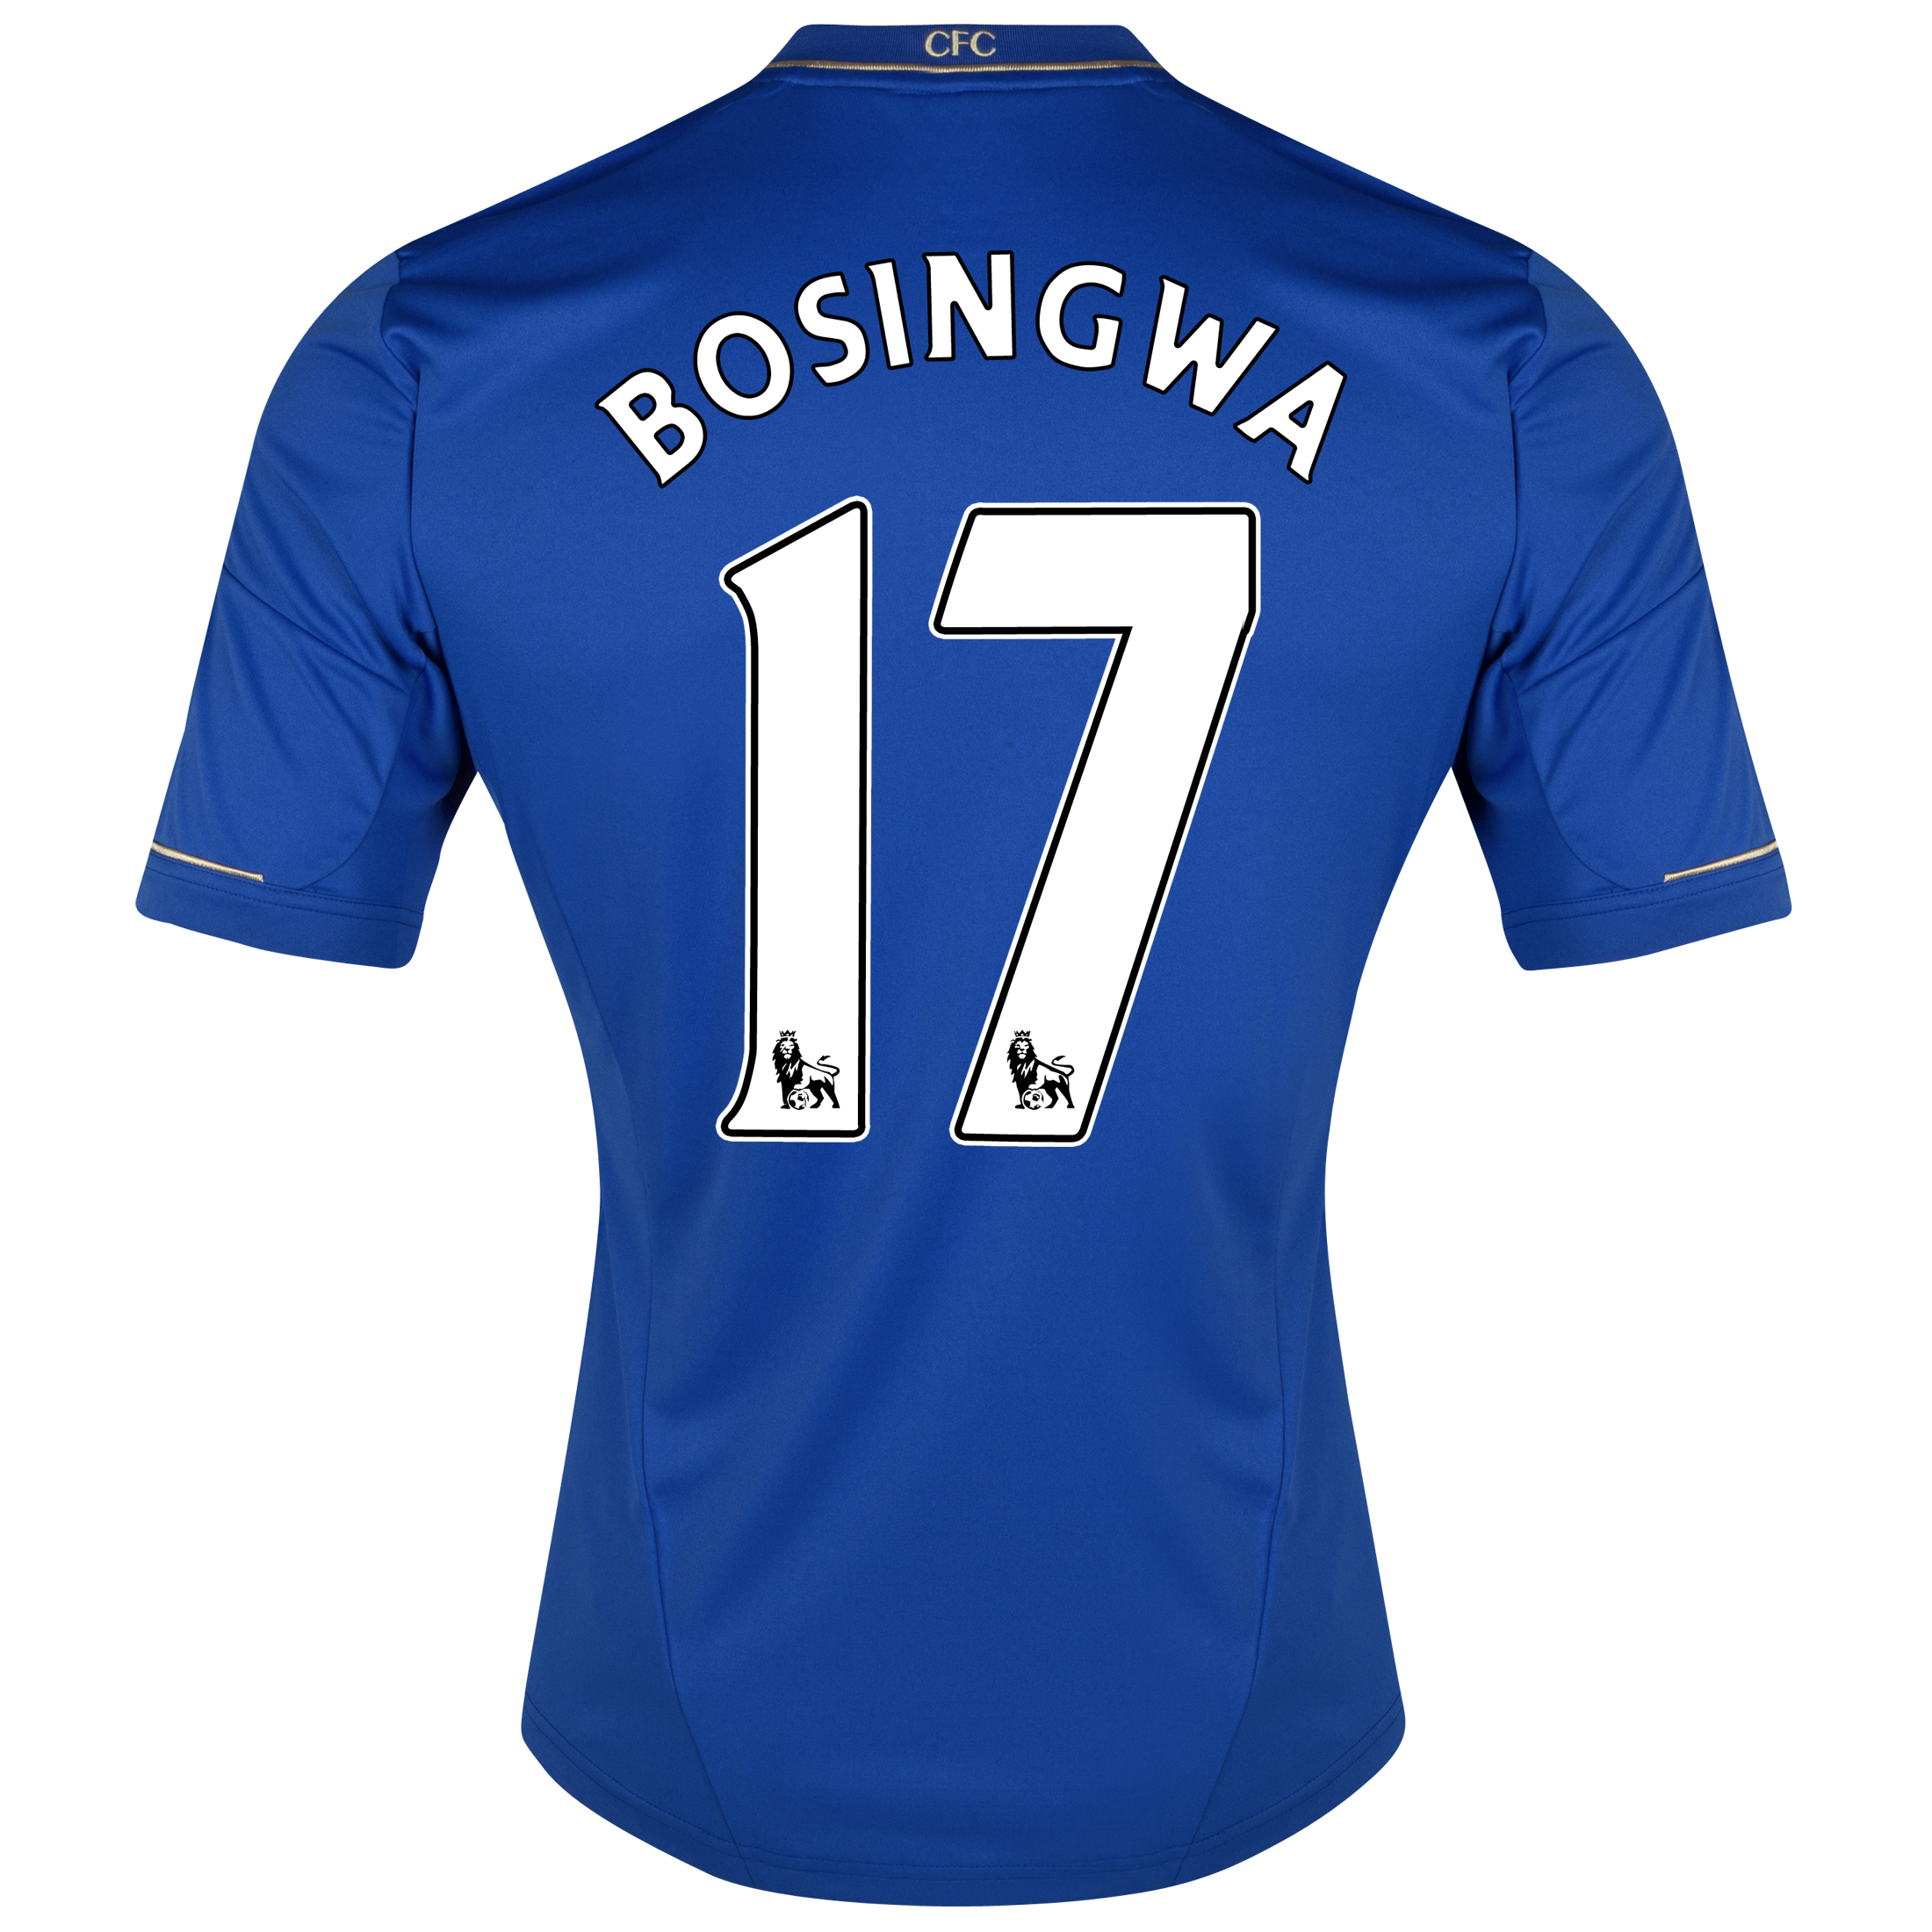 Chelsea Home Shirt 2012/13 - Youths with Bosingwa 17 printing